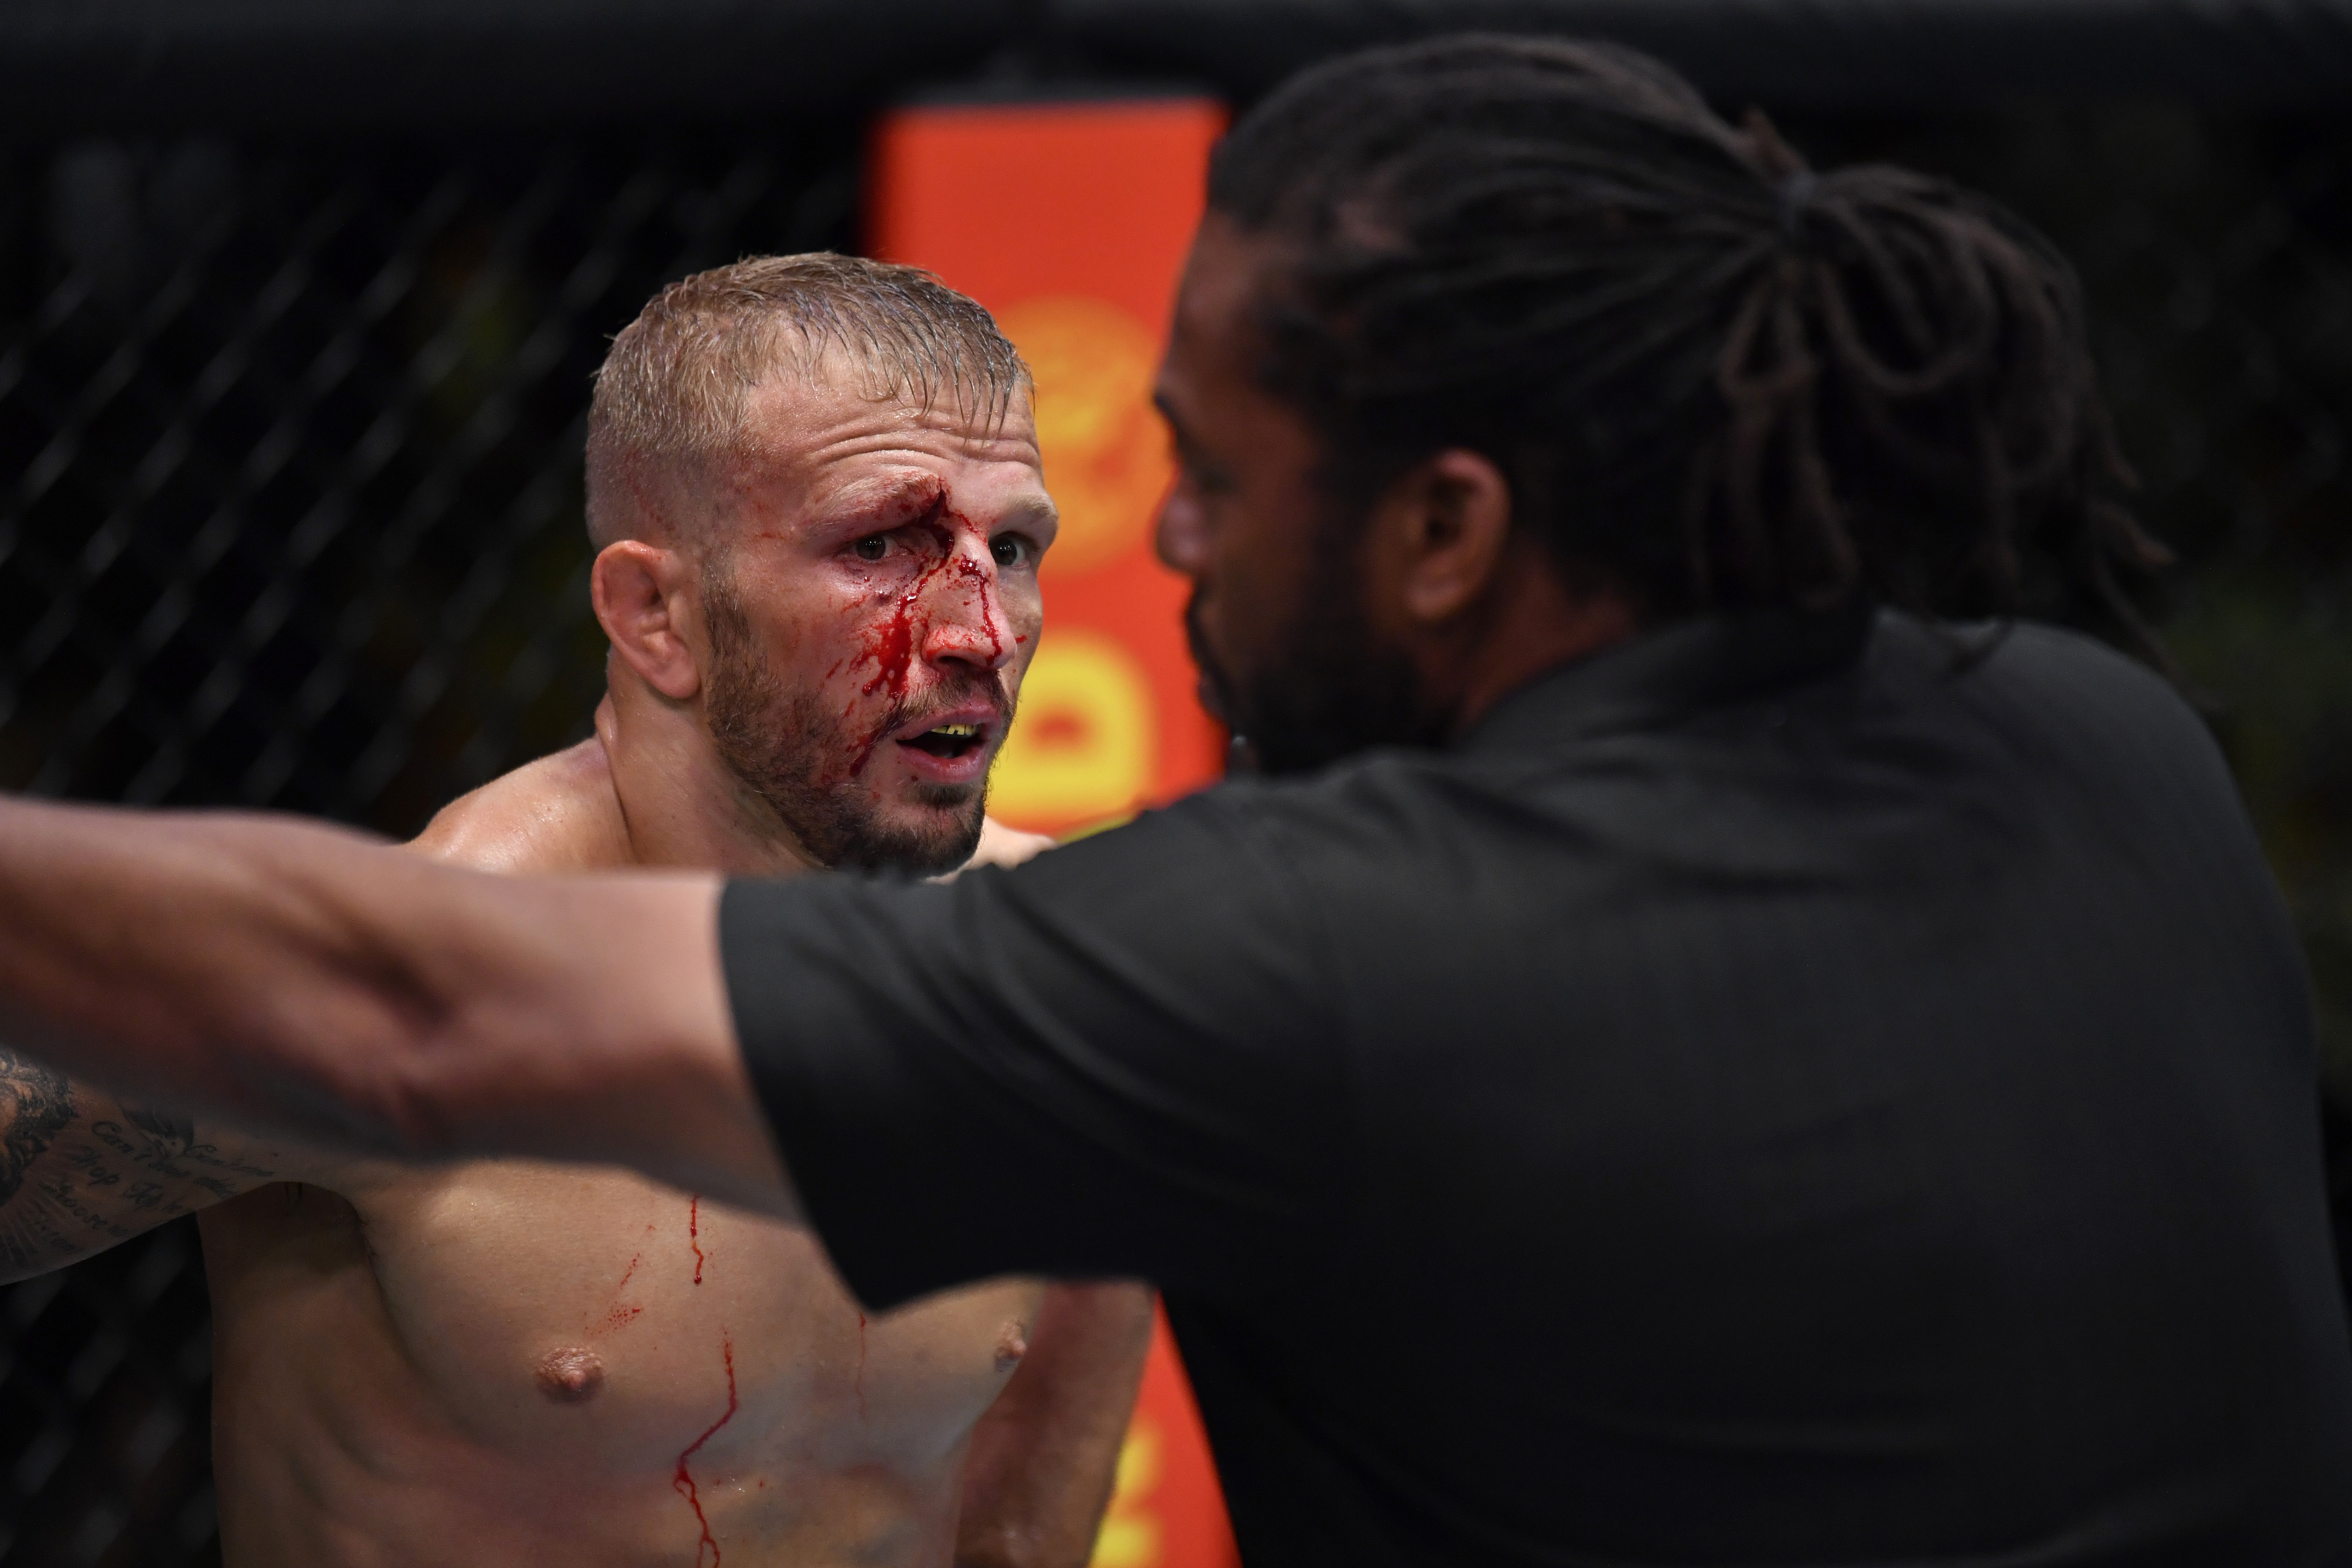 T.J. Dillashaw had a rough training camp in preparation for his UFC Vegas 32 headliner against Cory Sandhagen.